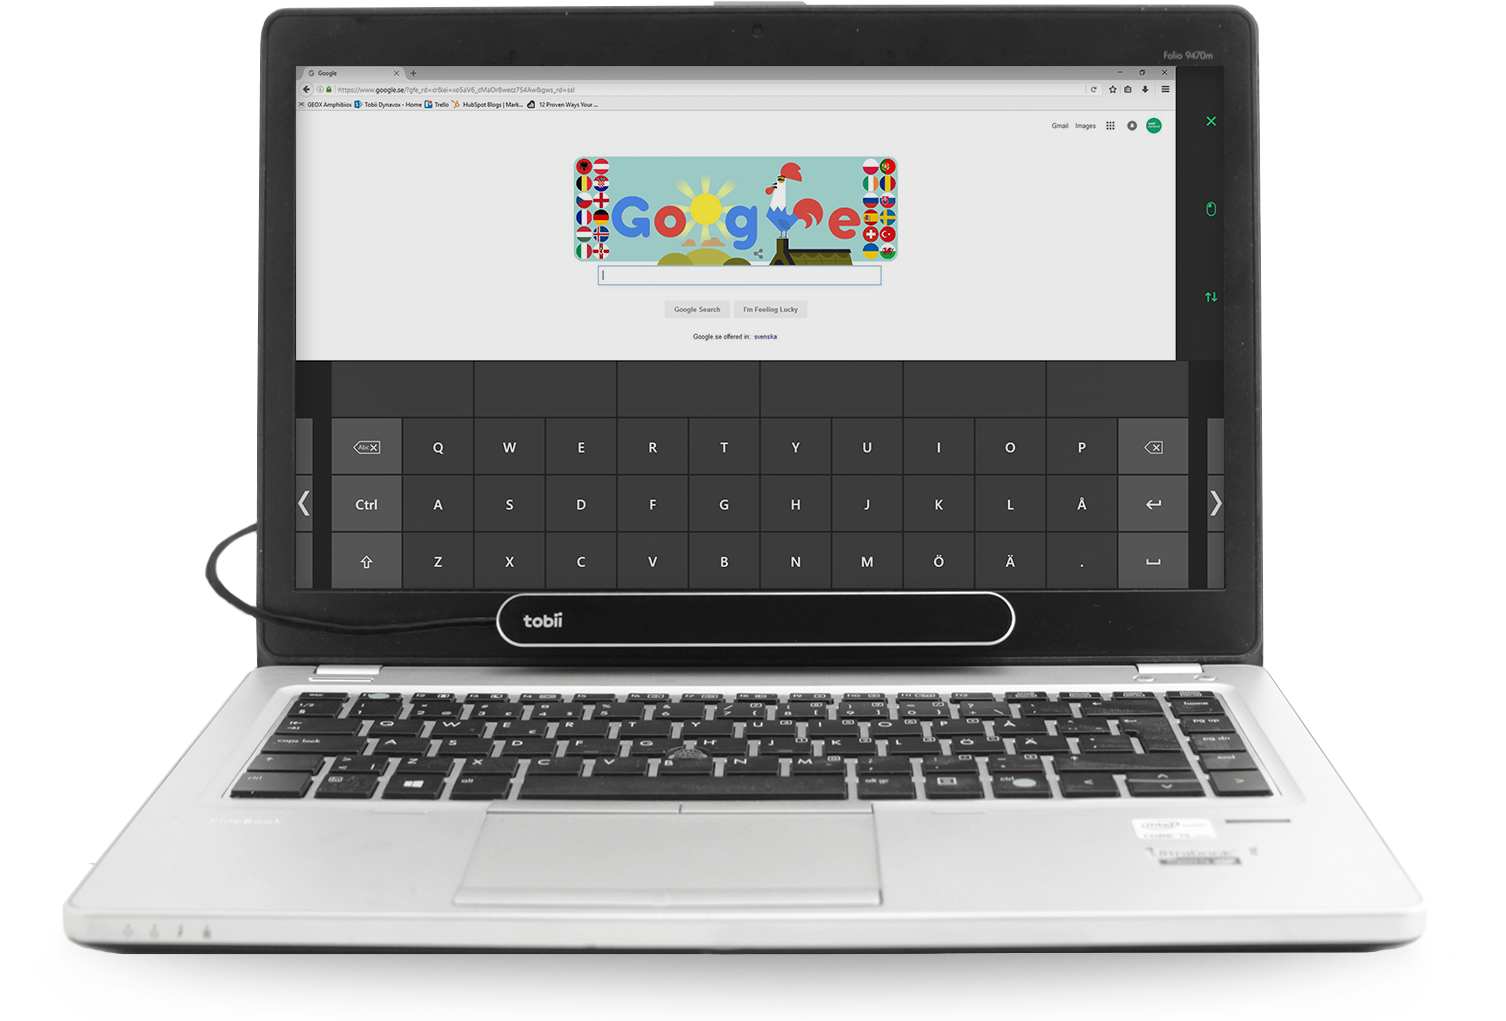 TobiiDynavox_PCEyeMini_Laptop_front.png